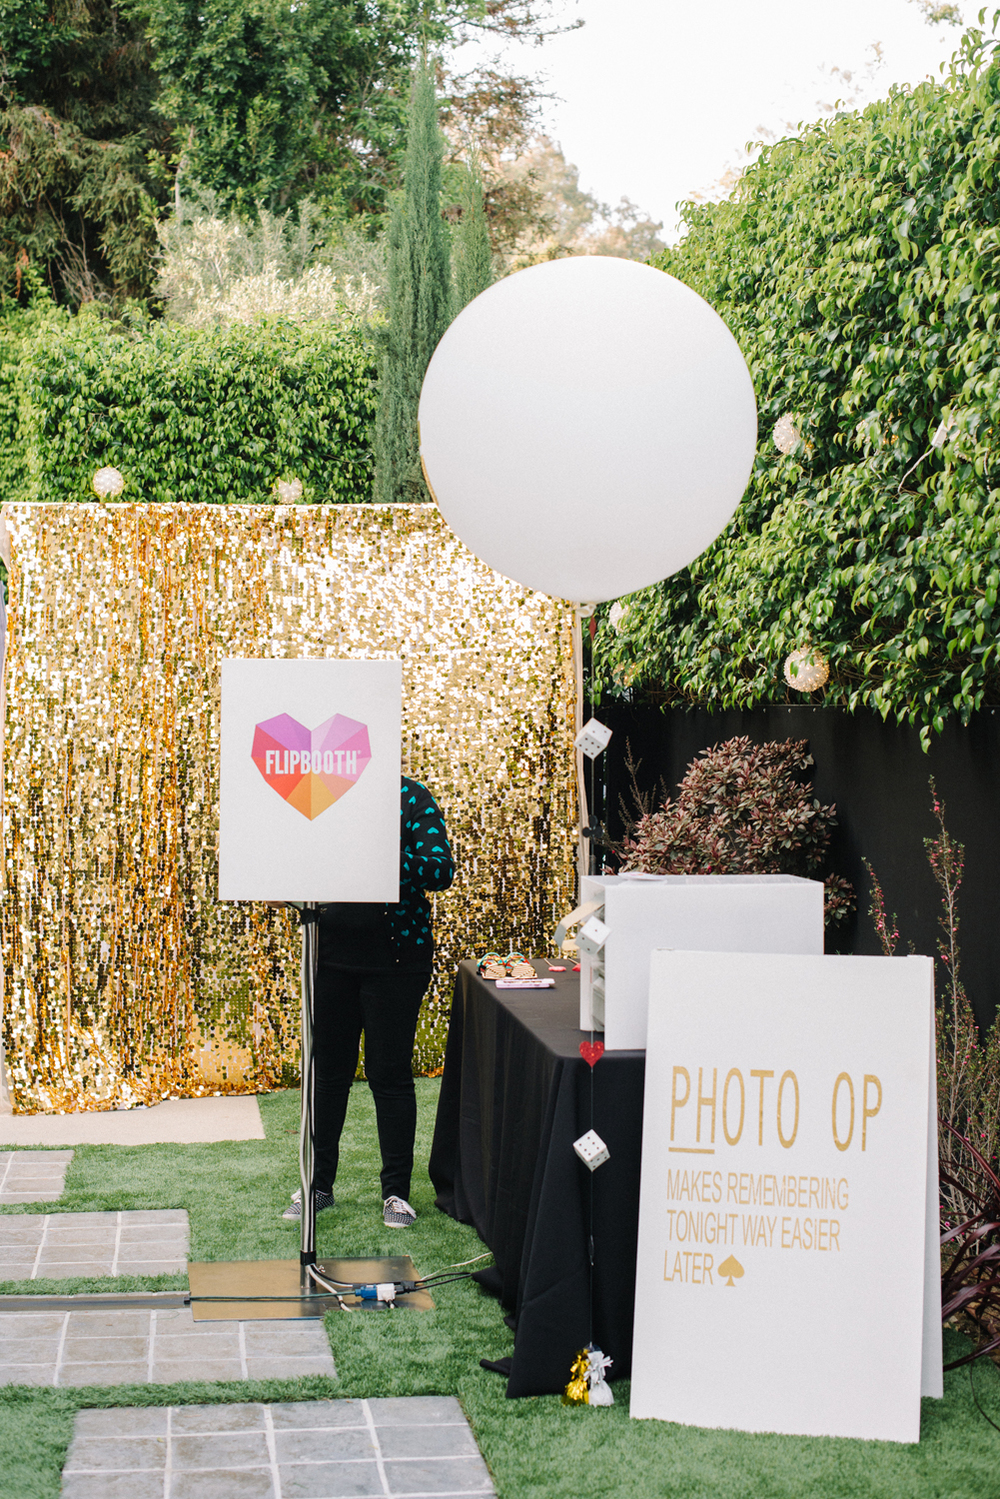 tarynco-events-vegas-casino-party-photobooth-balloon.jpg